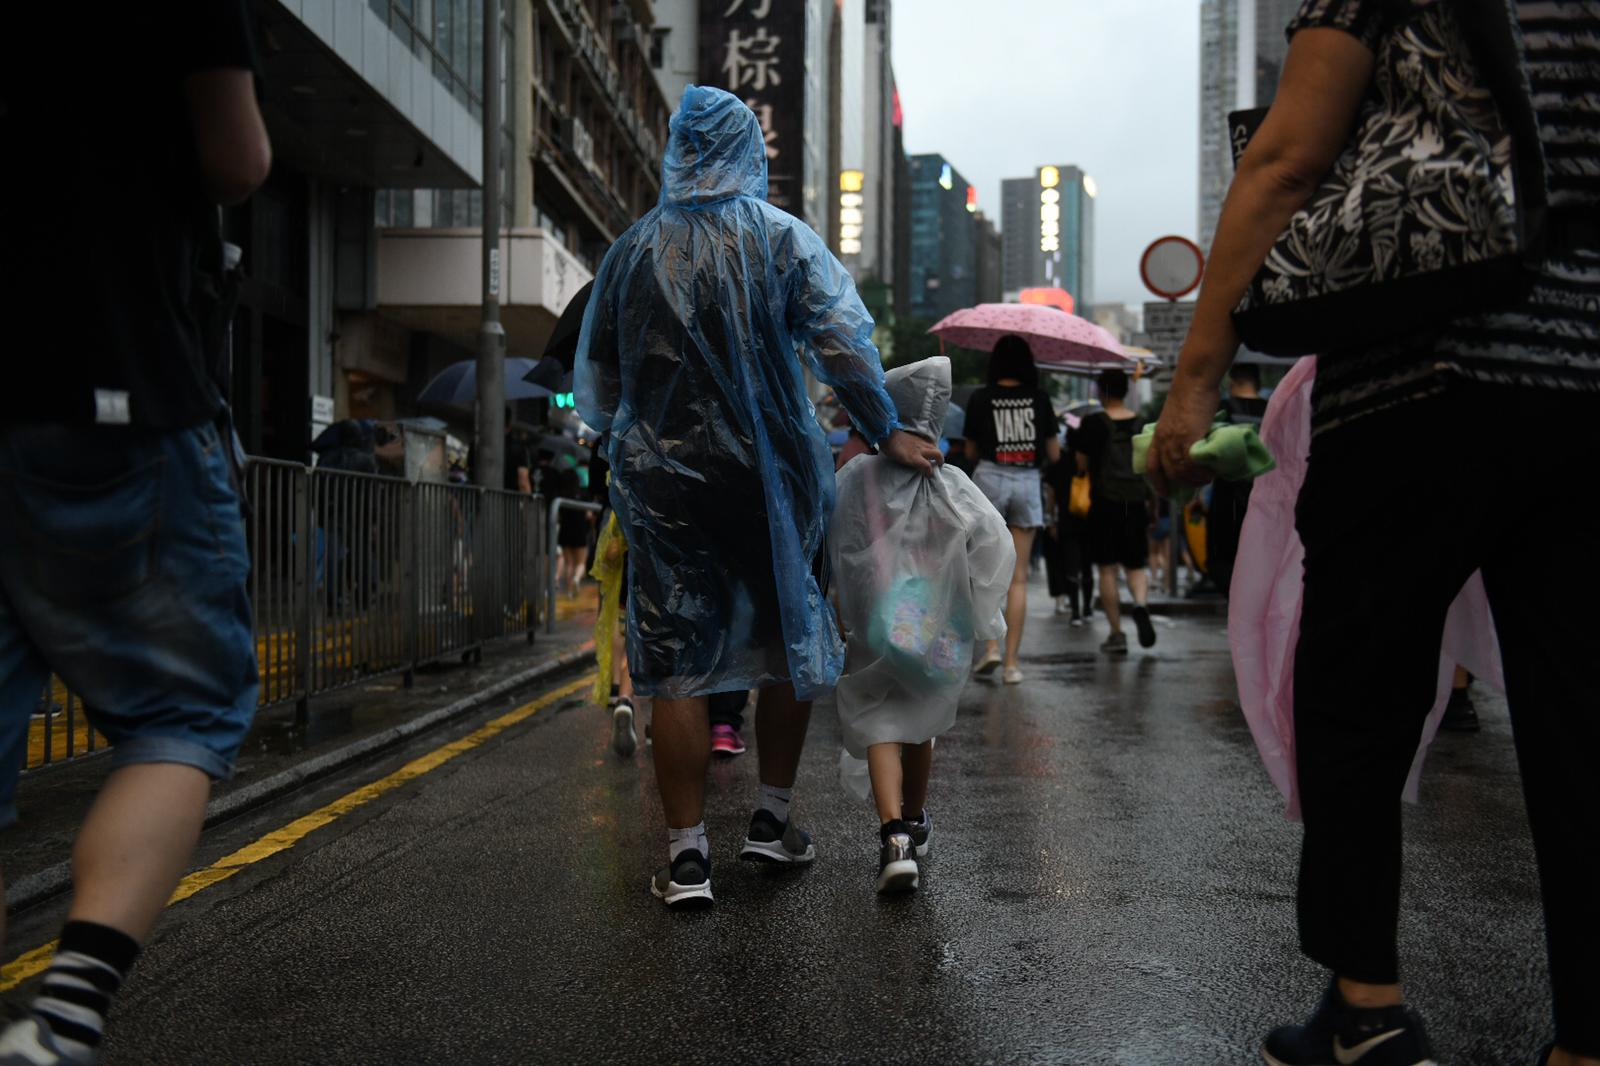 A family marches on in the rain.